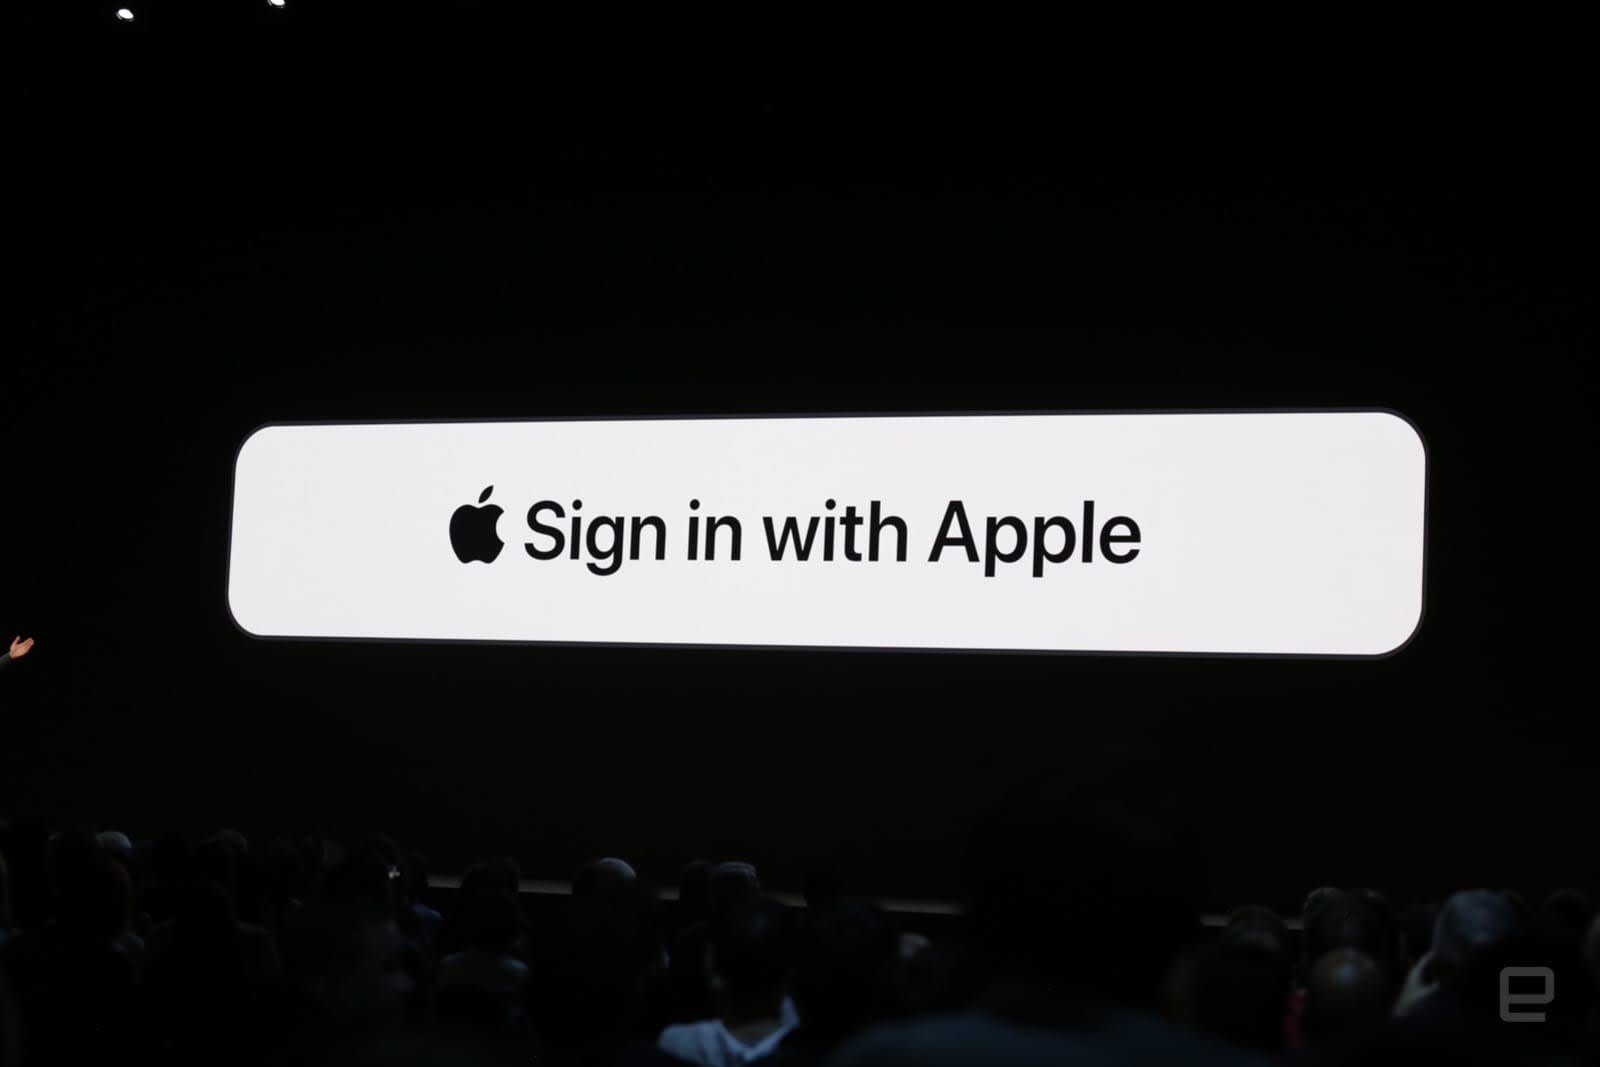 Sign in with Apple' protects your email and info from apps